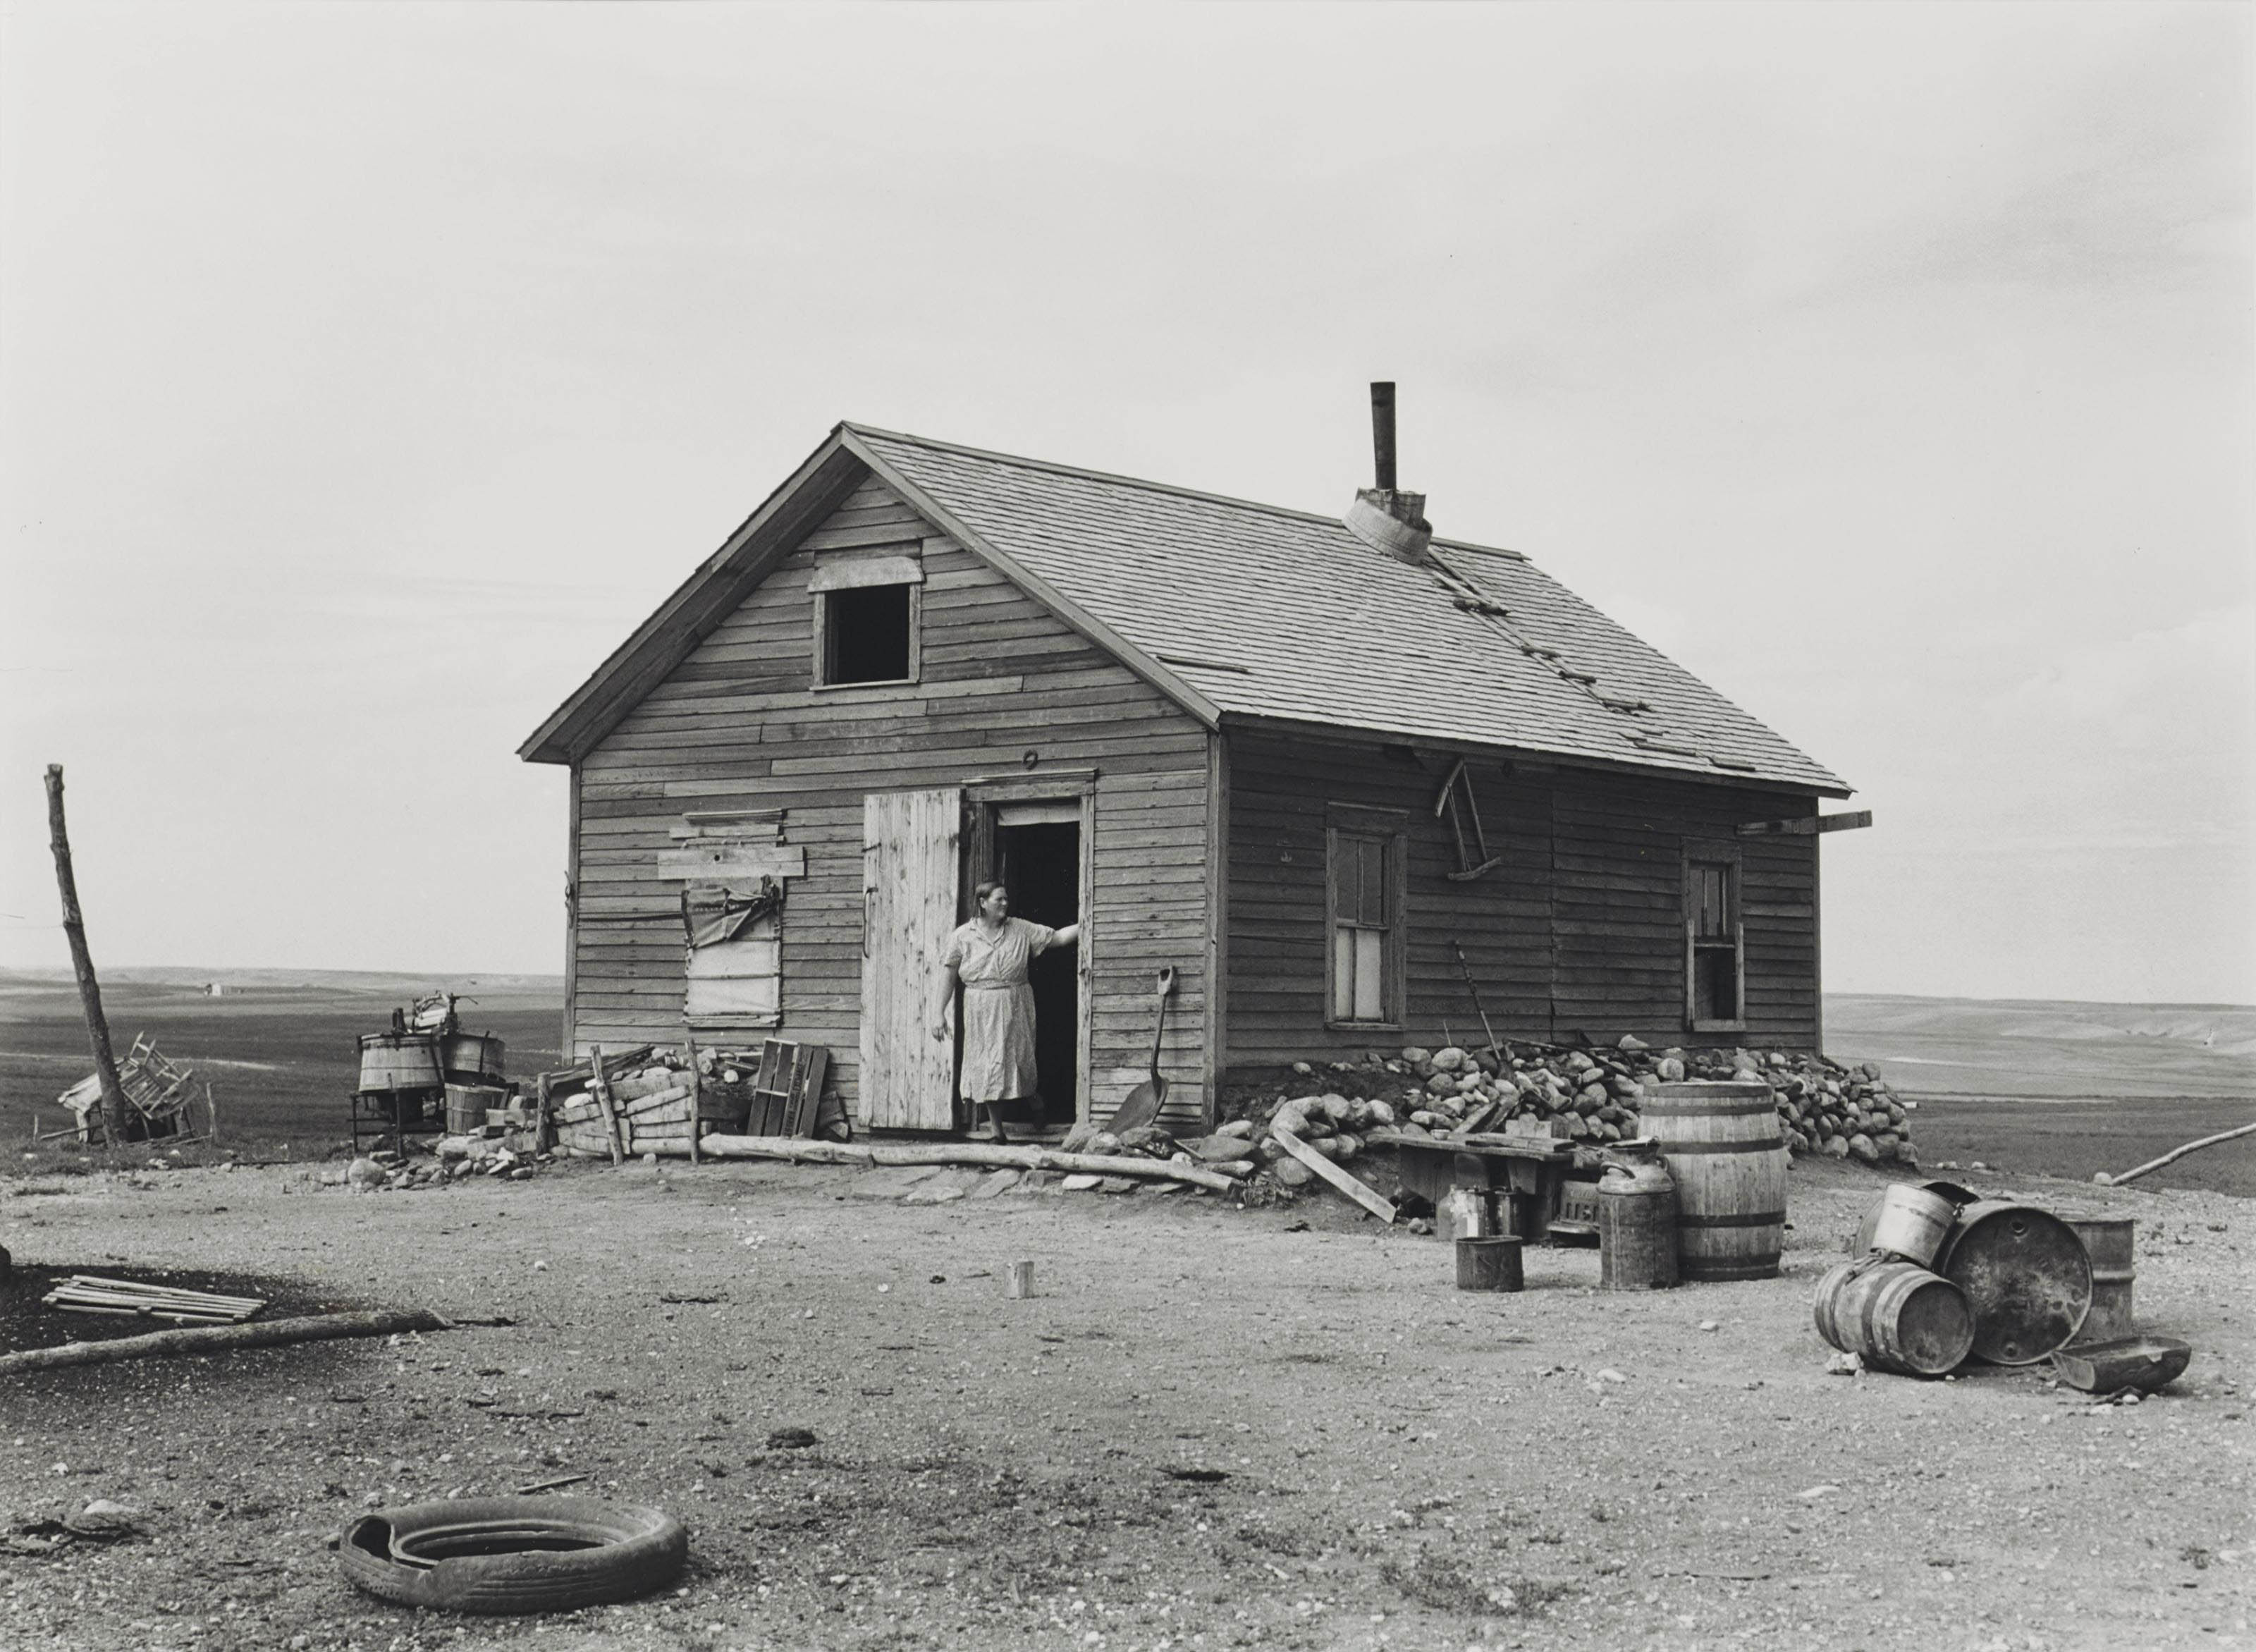 Company Housing in Coal Camp, Appalachia, 1946; and Farm House, North Dakota, 1939